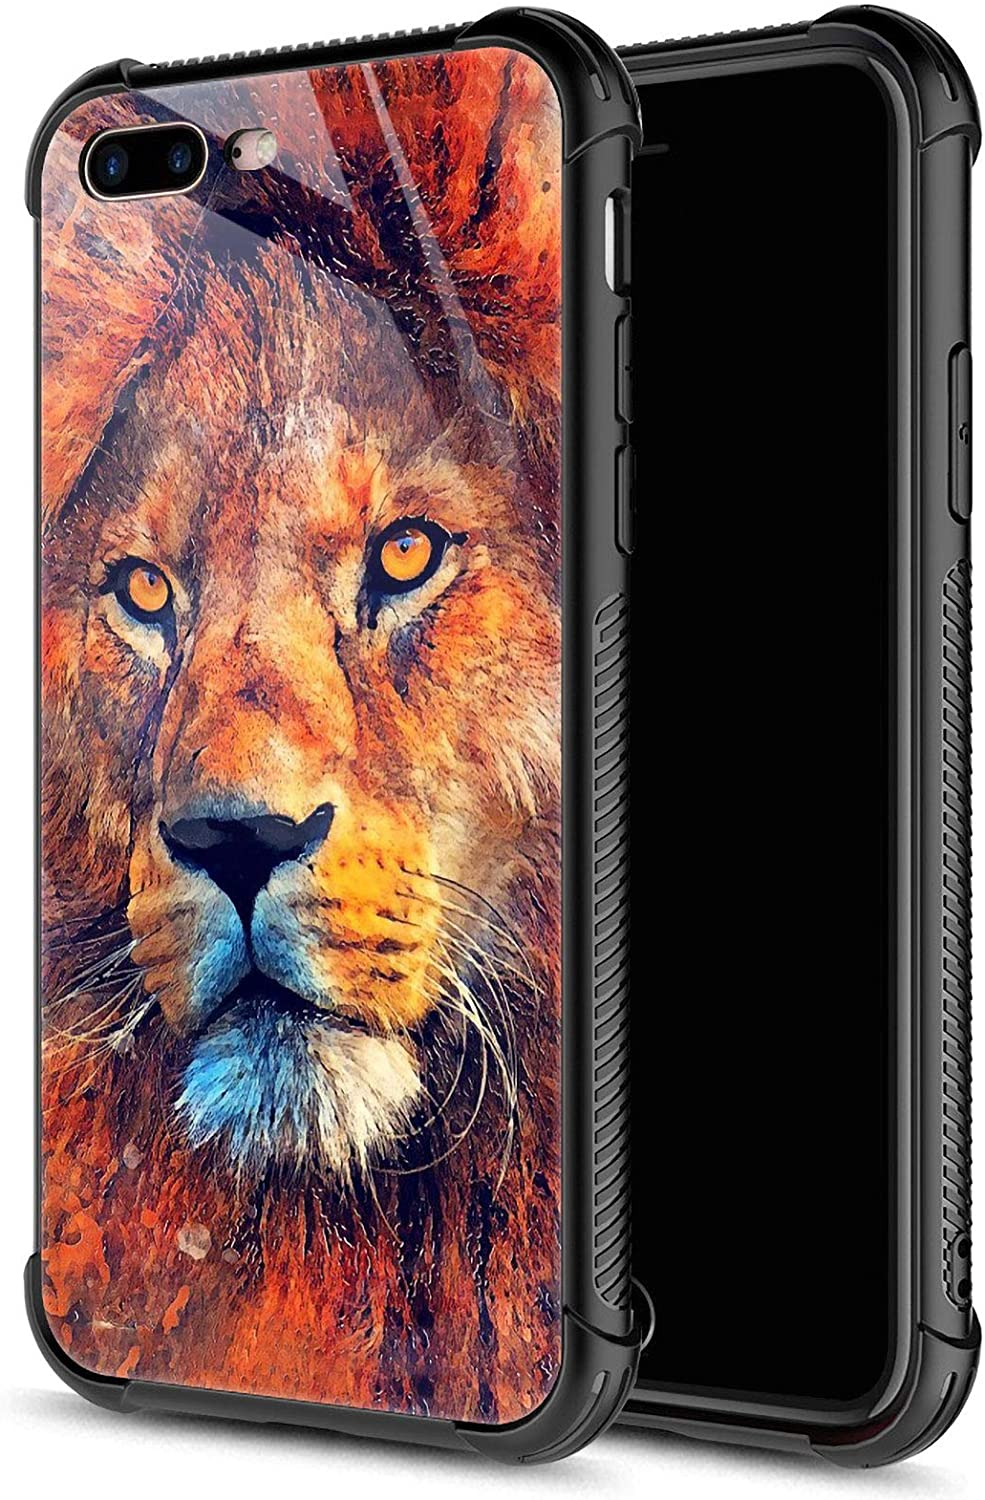 CARLOCA iPhone 8 Plus Case,Oil Painting Lion iPhone 7 Plus Cases for Girls Boys,Graphic Design Shockproof Anti-Scratch Drop Protection Case for Apple iPhone 7/8 Plus